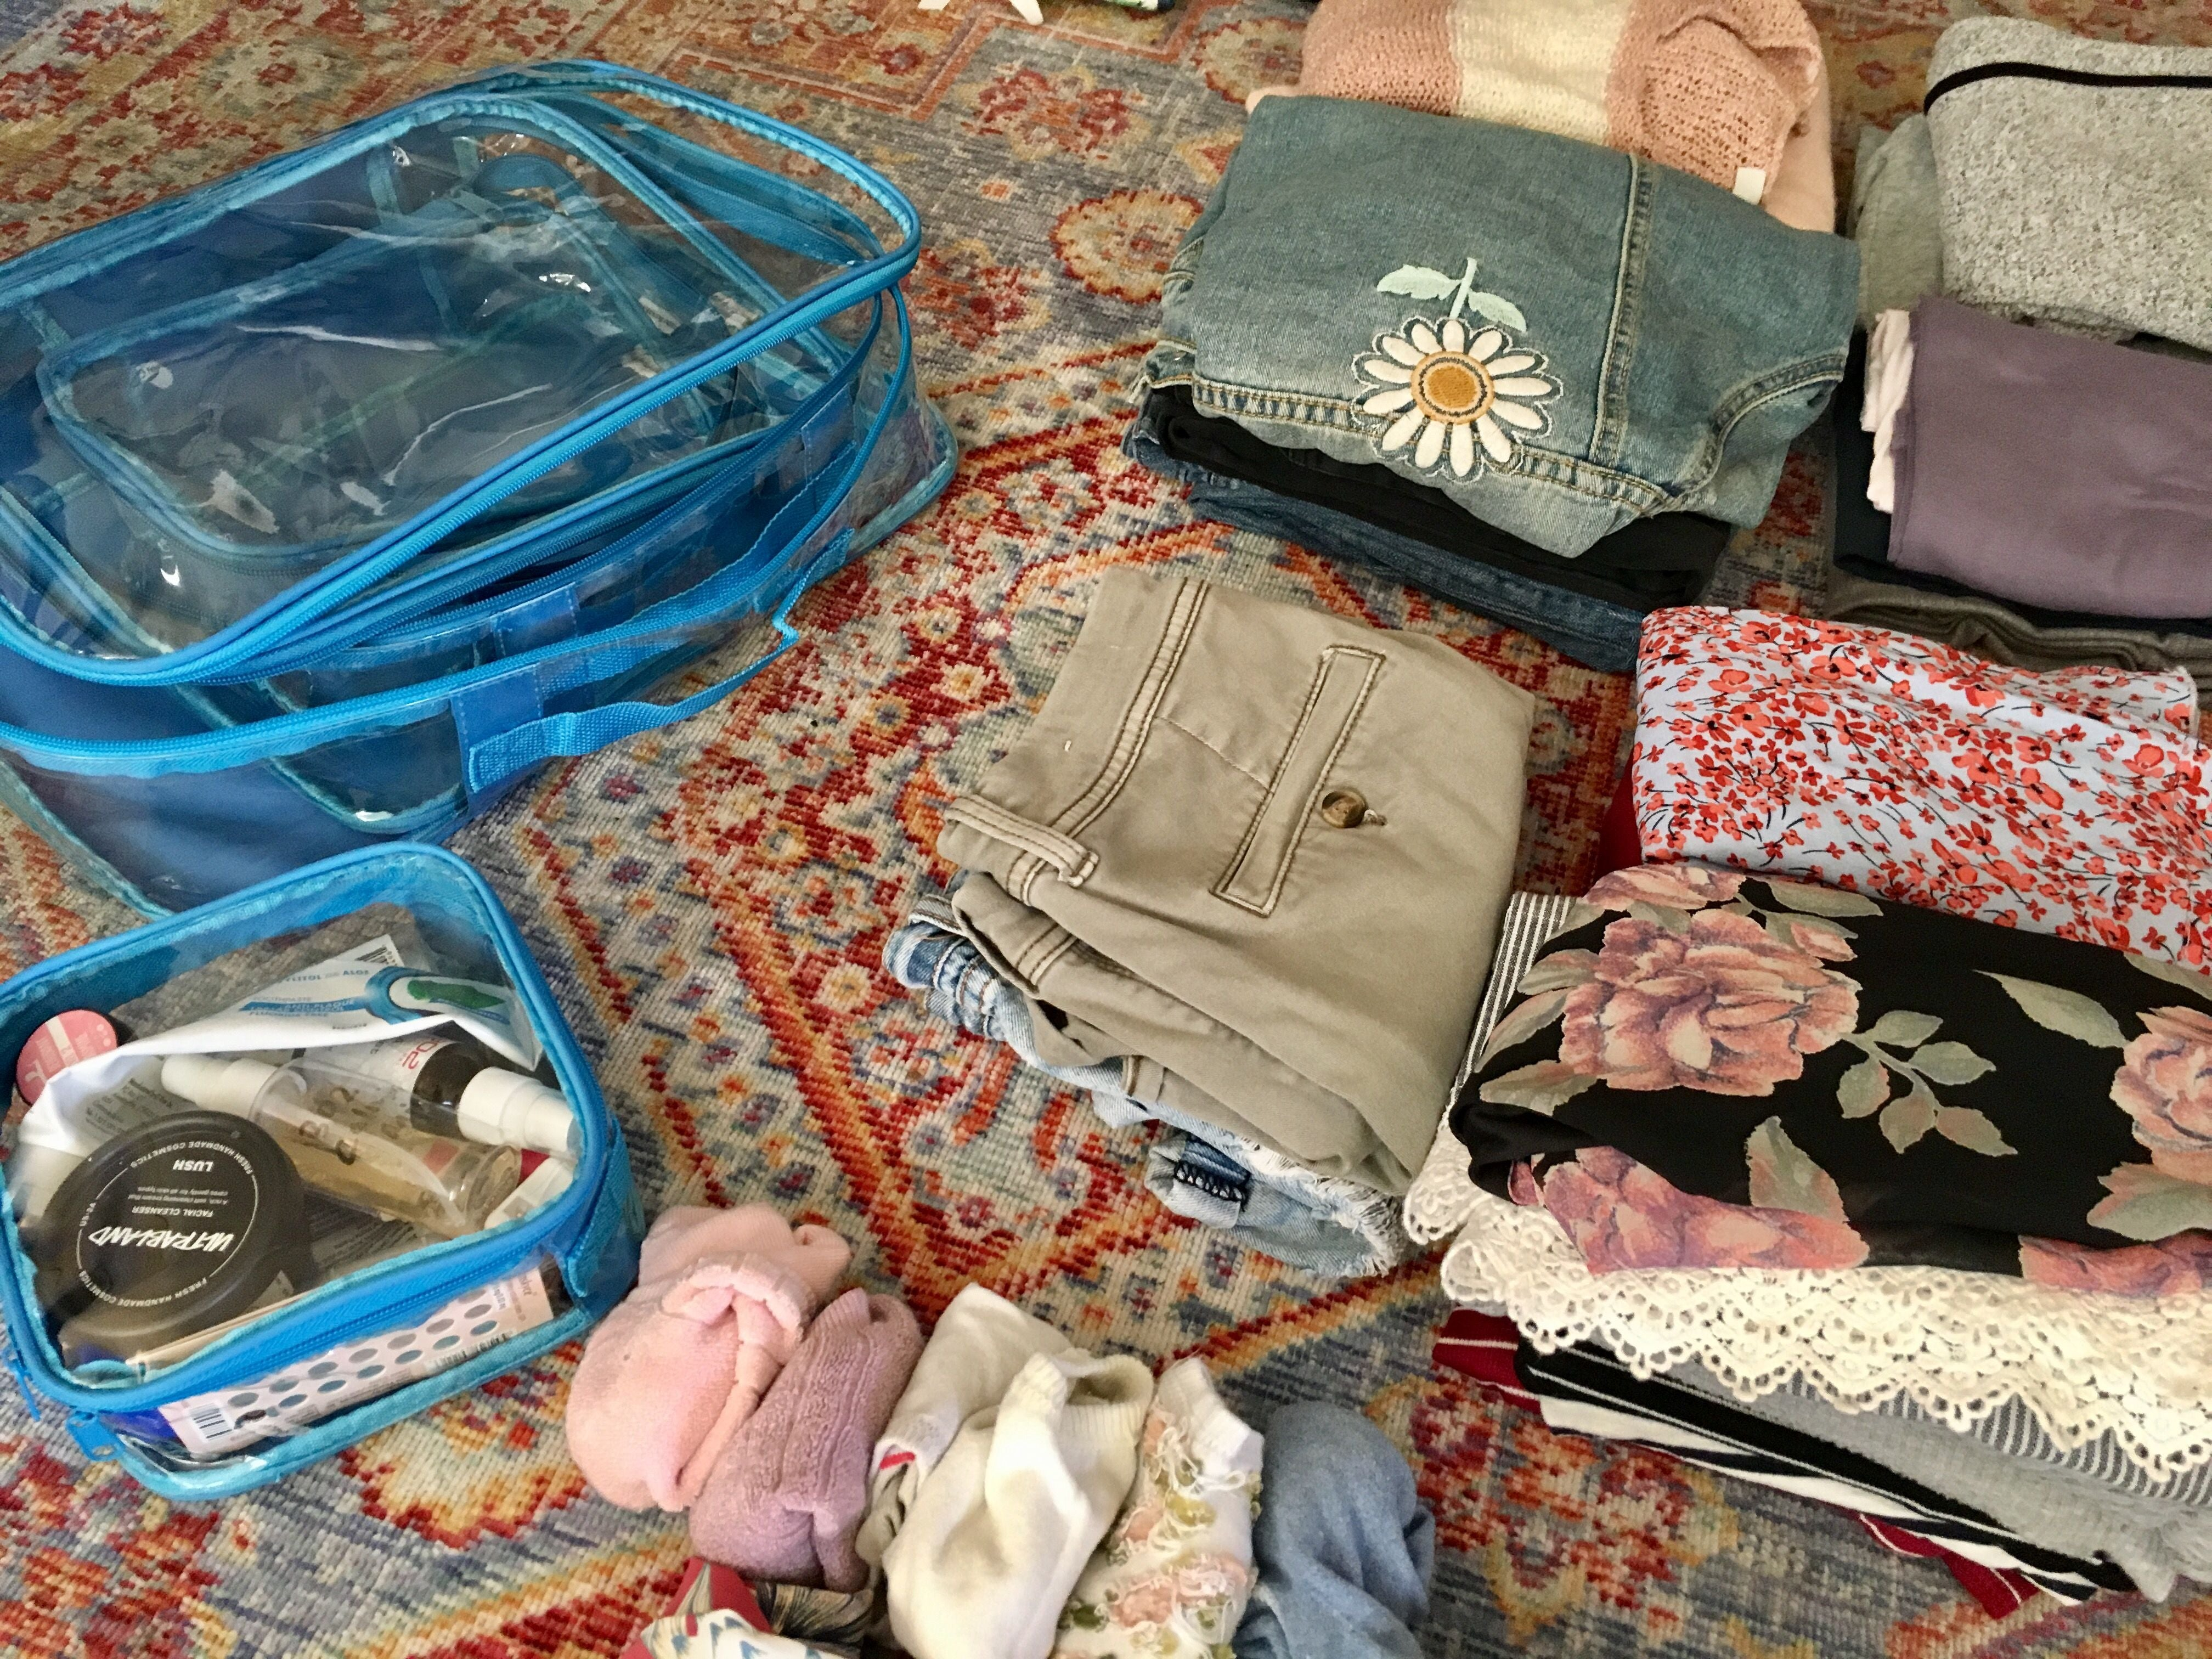 Folded clothes and turquoise clear packing cubes on the floor